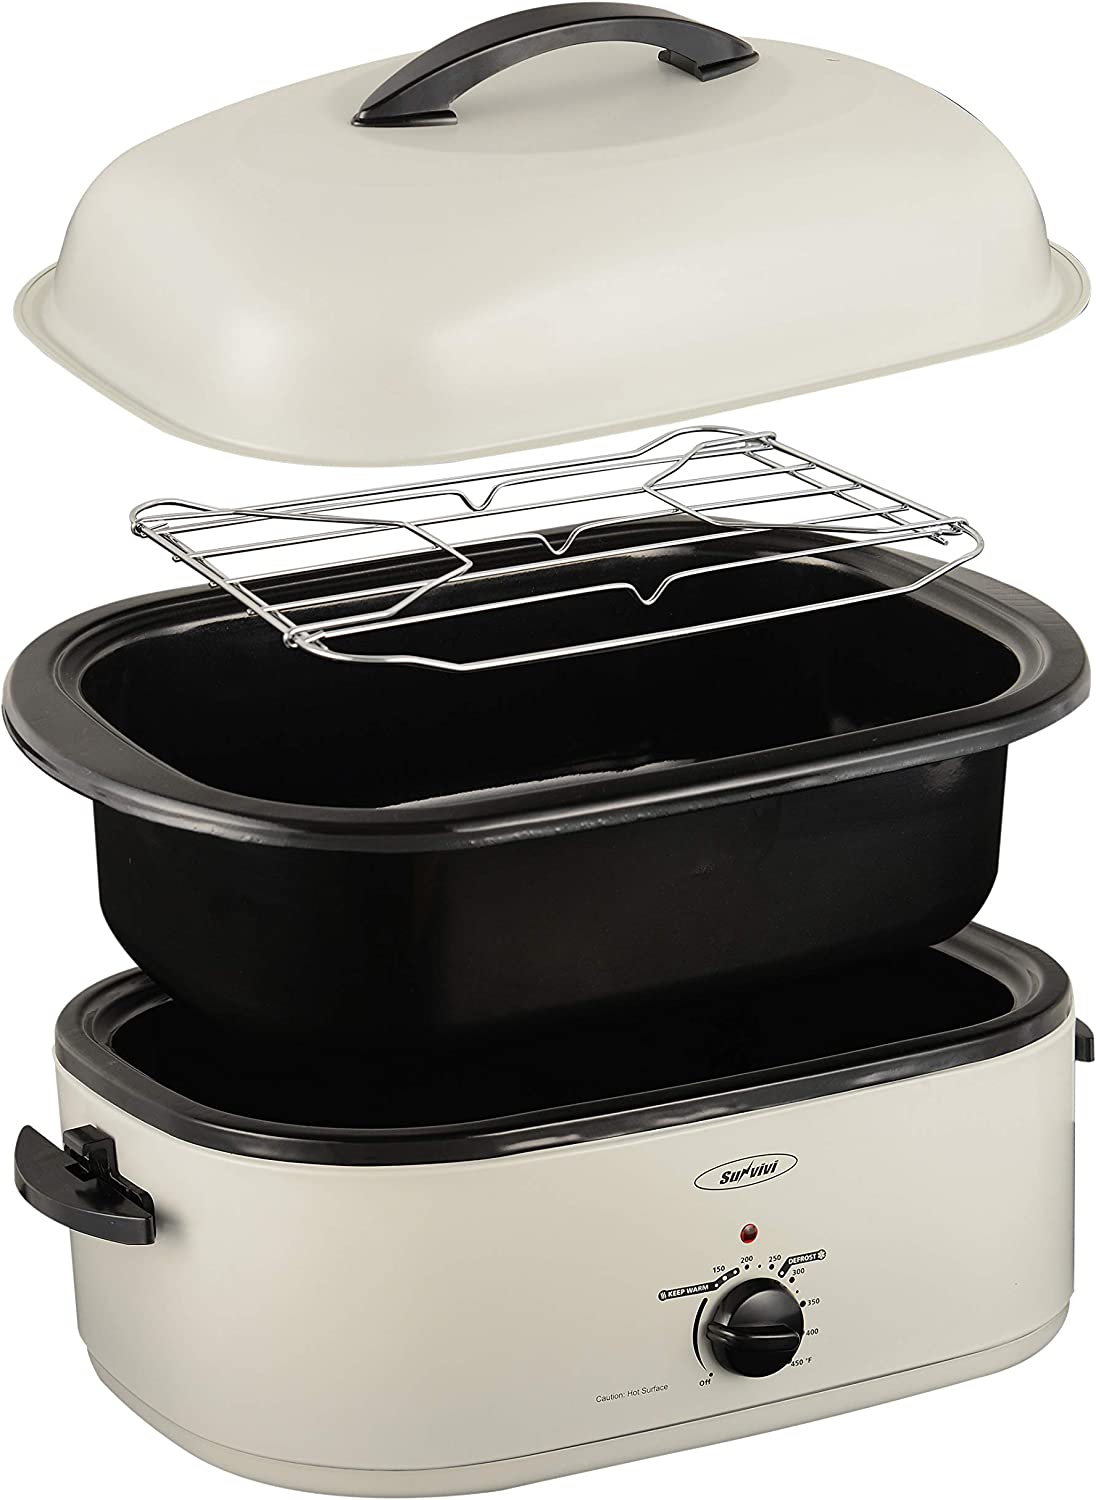 Roaster Oven Electric, Roaster Oven 18 Quart with Self-Basting Lid, Turkey Roaster Oven with Removable Pan and Rack, Adjustable Temperature Control Powerful 1450W Stainless Steel Roaster Oven, White